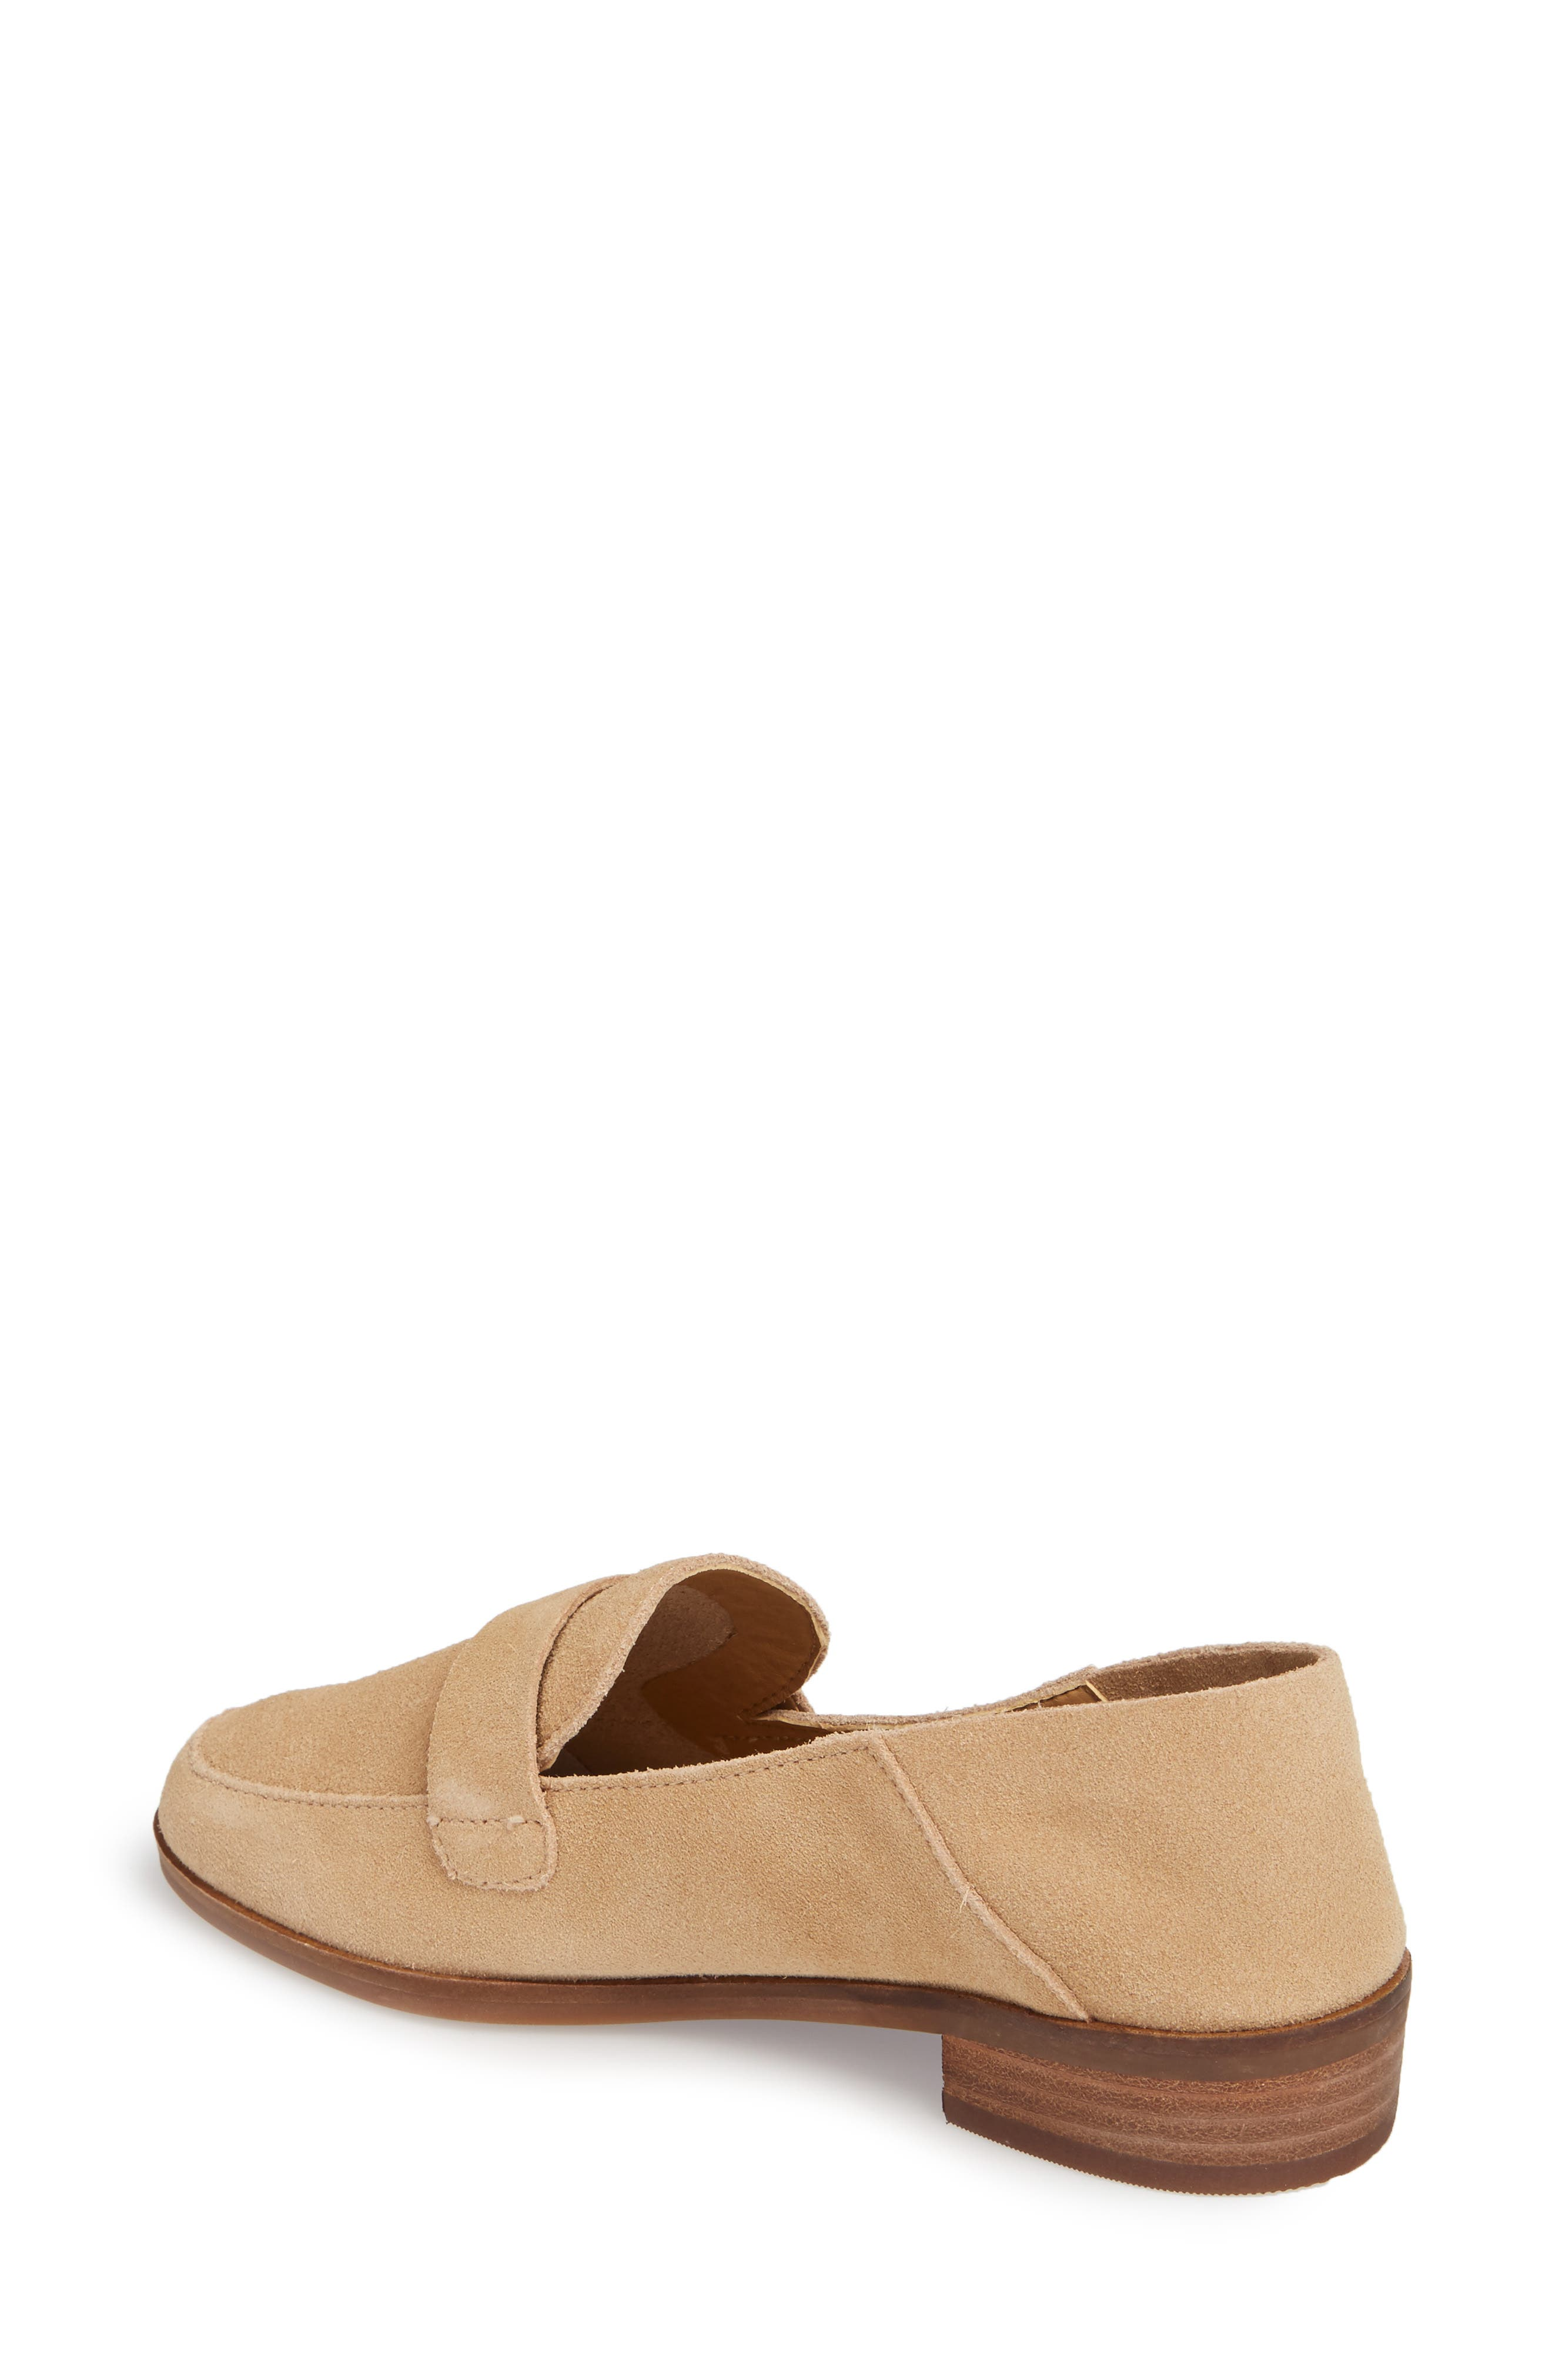 Chennie Loafer,                             Alternate thumbnail 6, color,